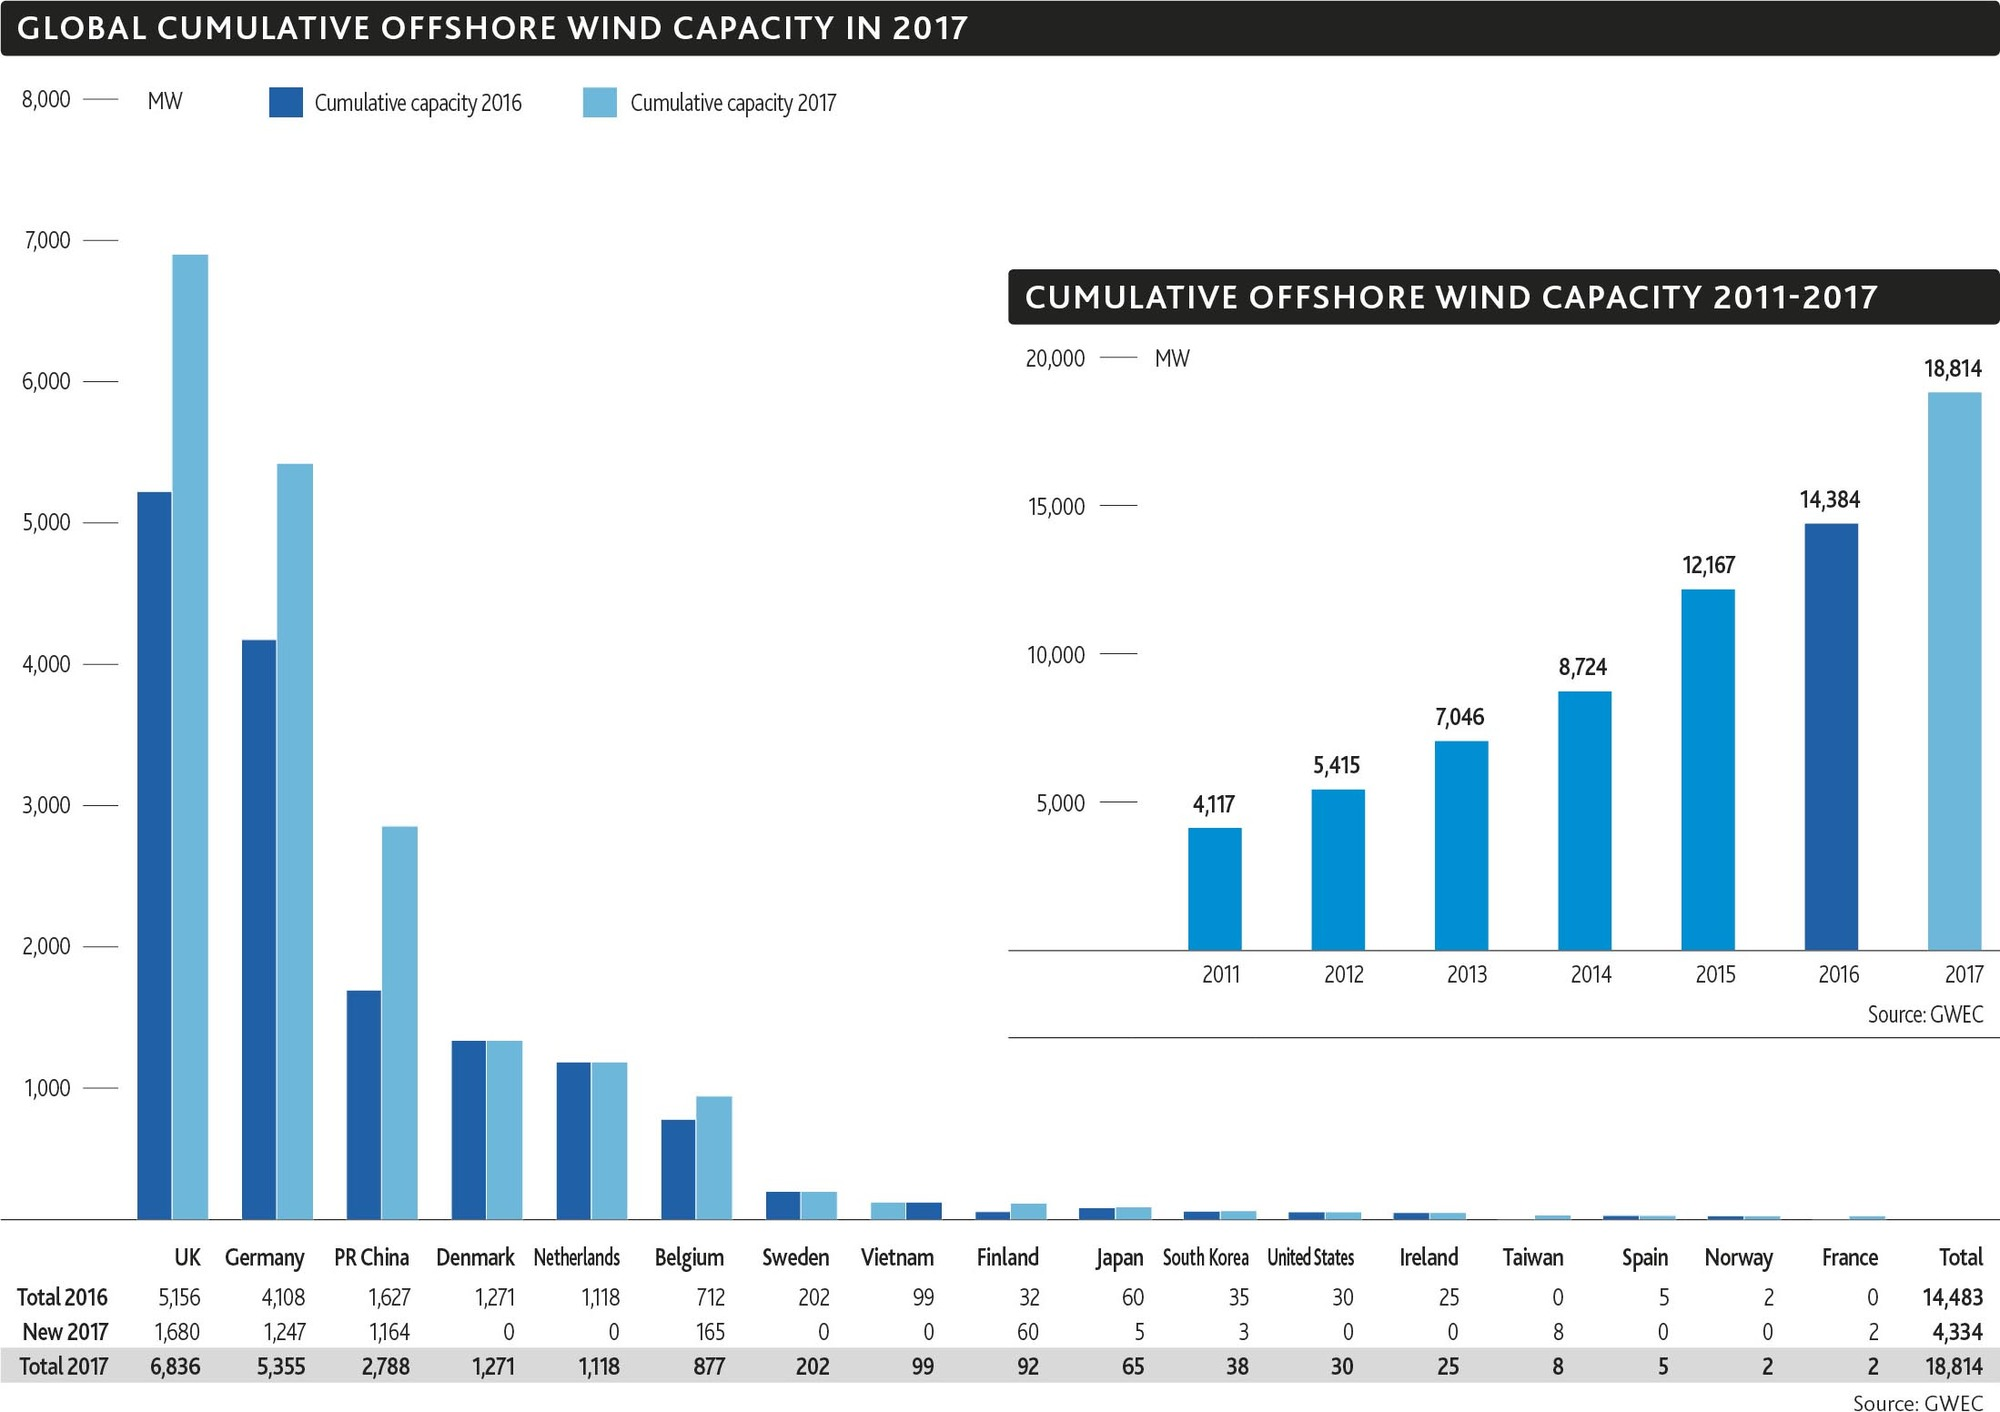 http://gwec.net/wp-content/uploads/2018/04/6_Global-cumulative-Offshore-Wind-capacity-in-2017.jpg